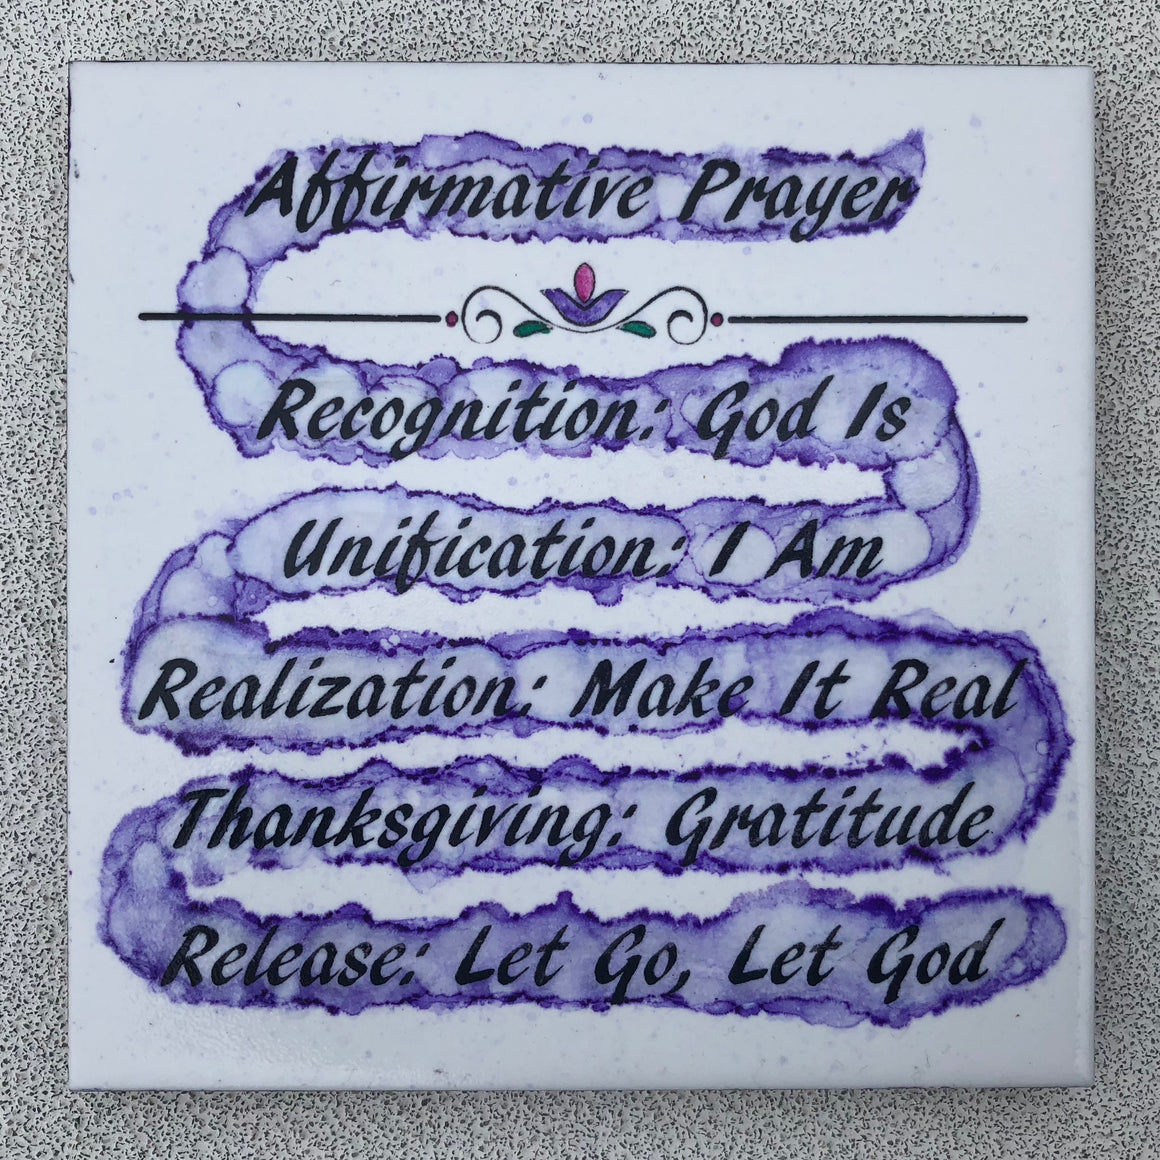 Affirmative Prayer Ceramic Art Tile